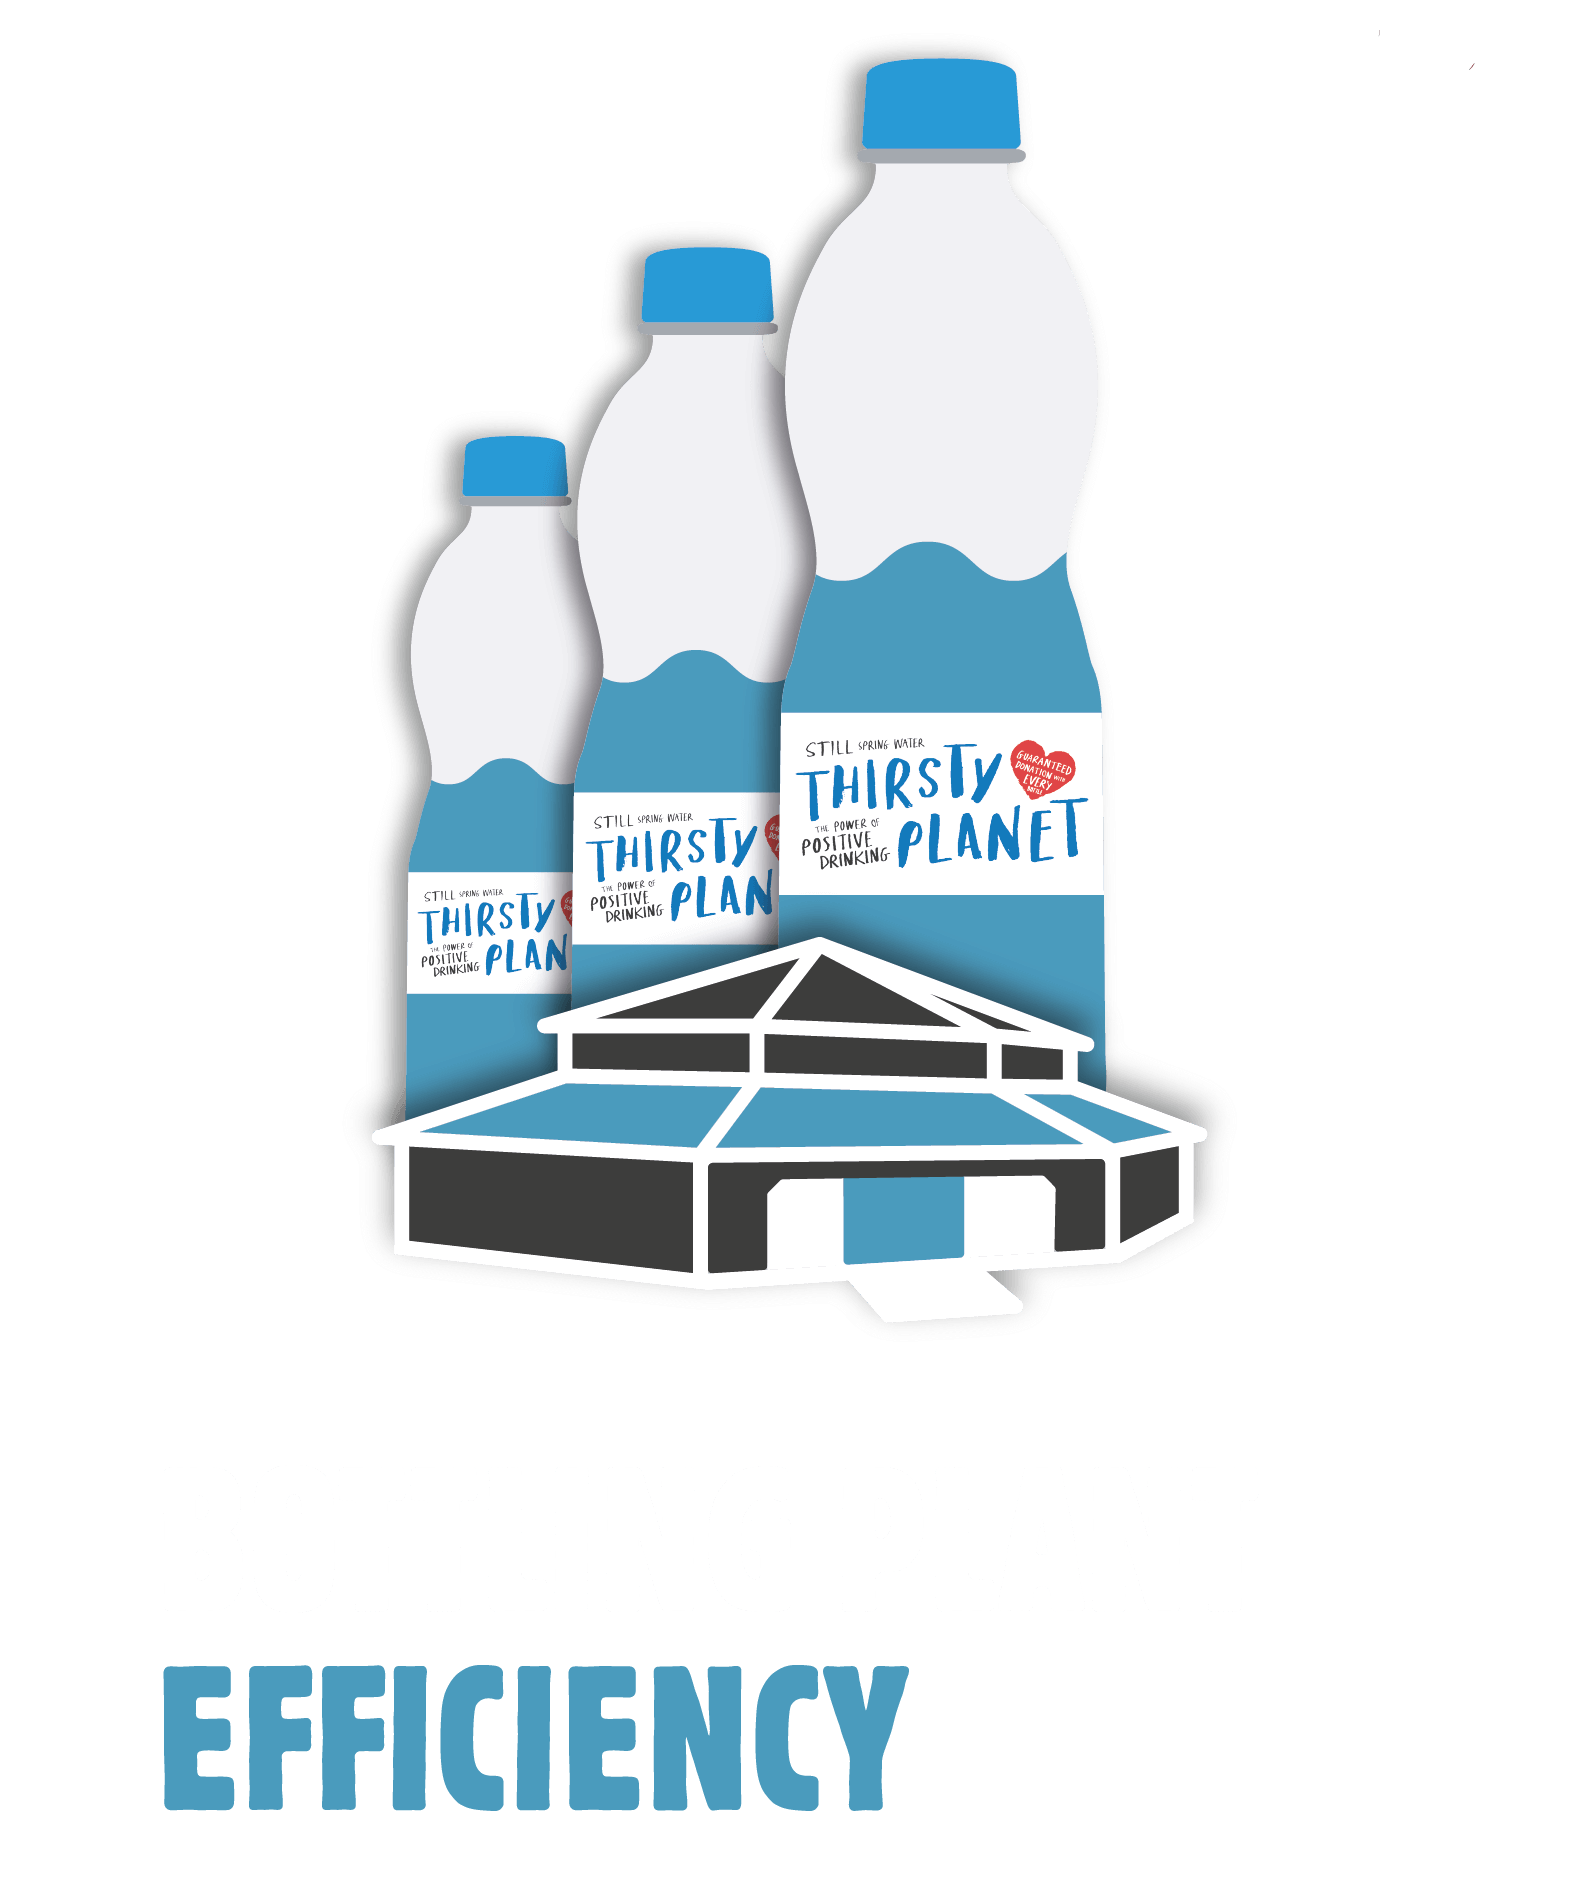 Bottling plant efficiency